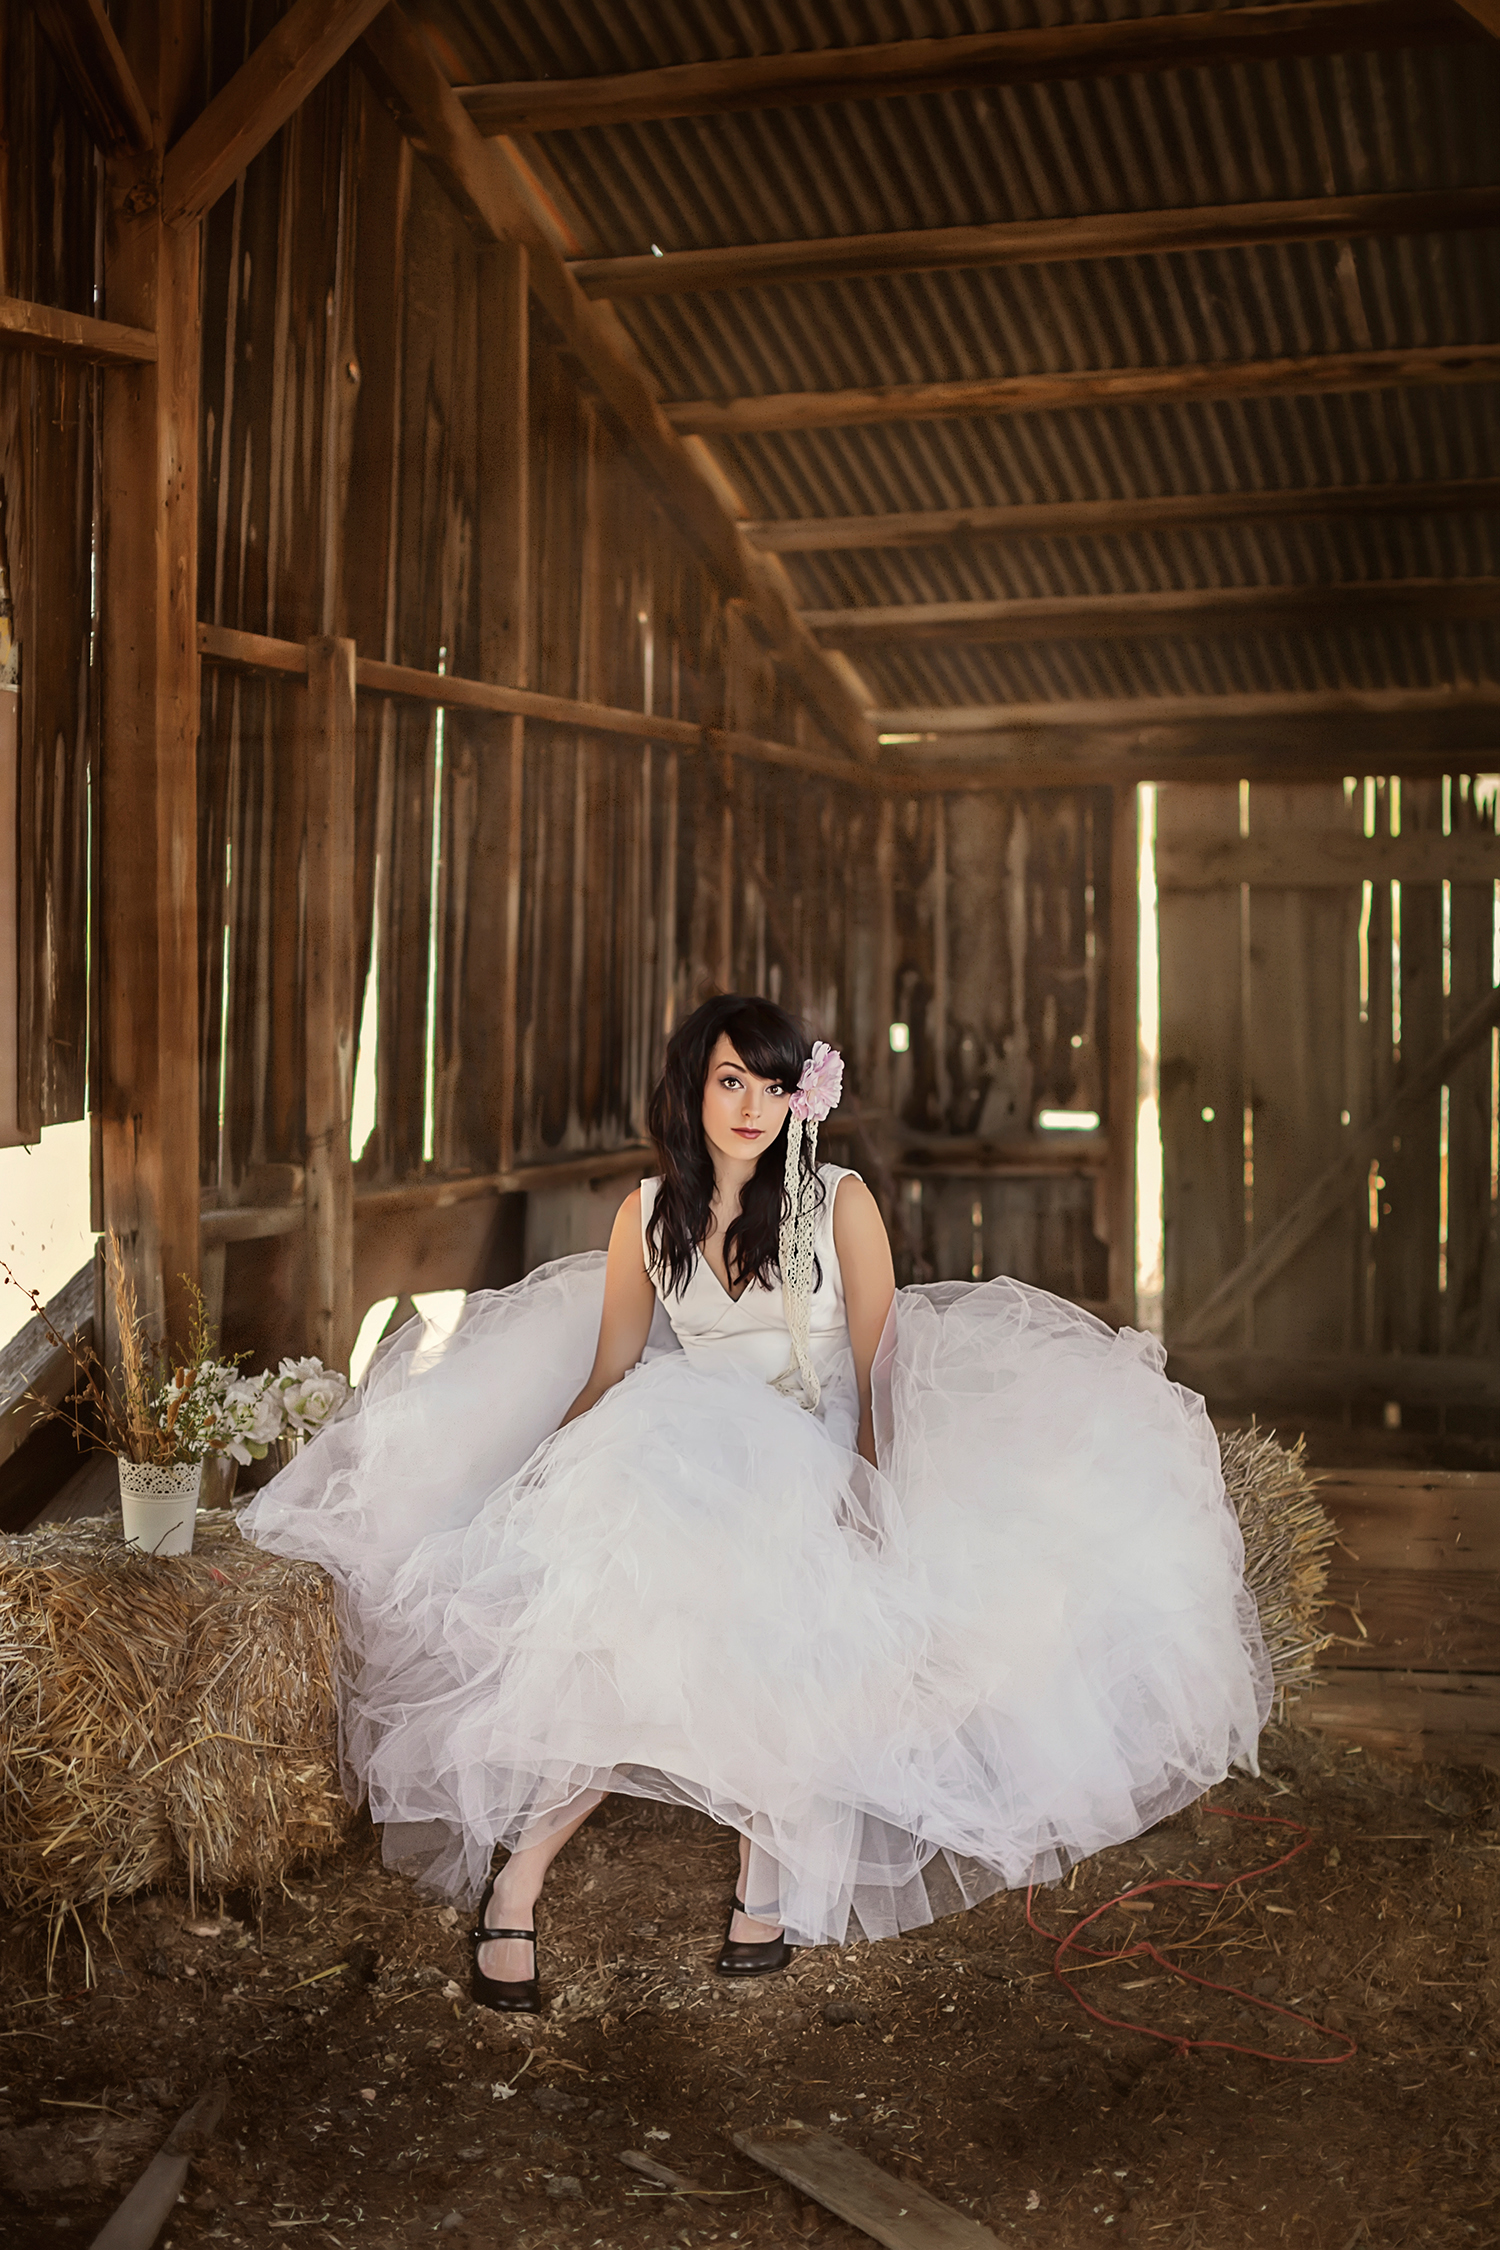 Dena_Rooney_Wedding_Photographer_Ranch_002.jpg